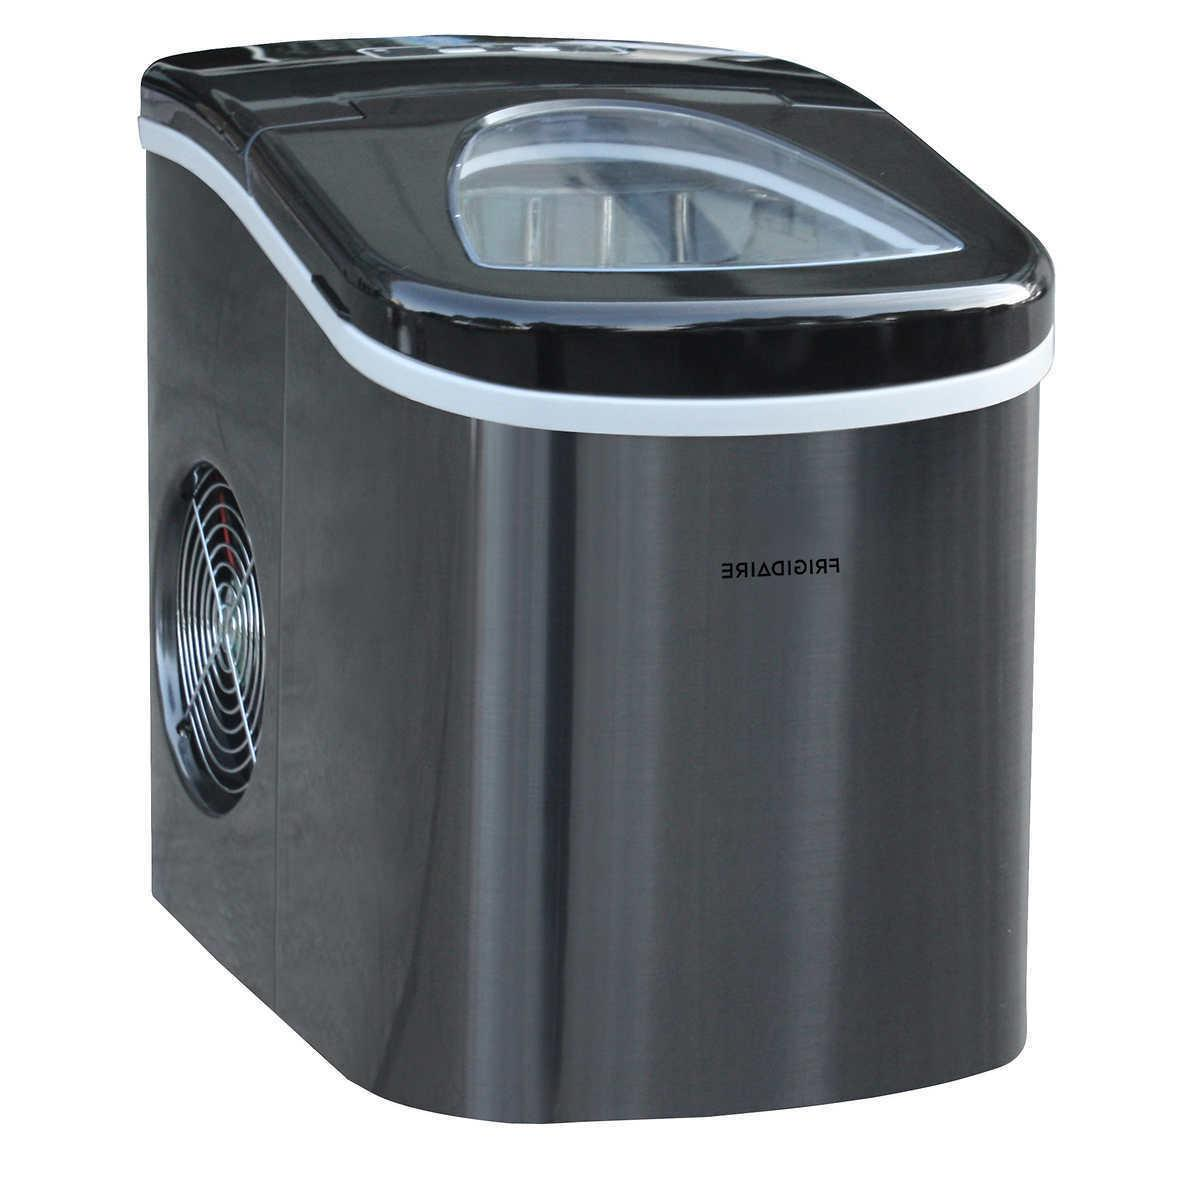 Portable Ice Maker Compact Quiet Self Cleaning Stainless Ste